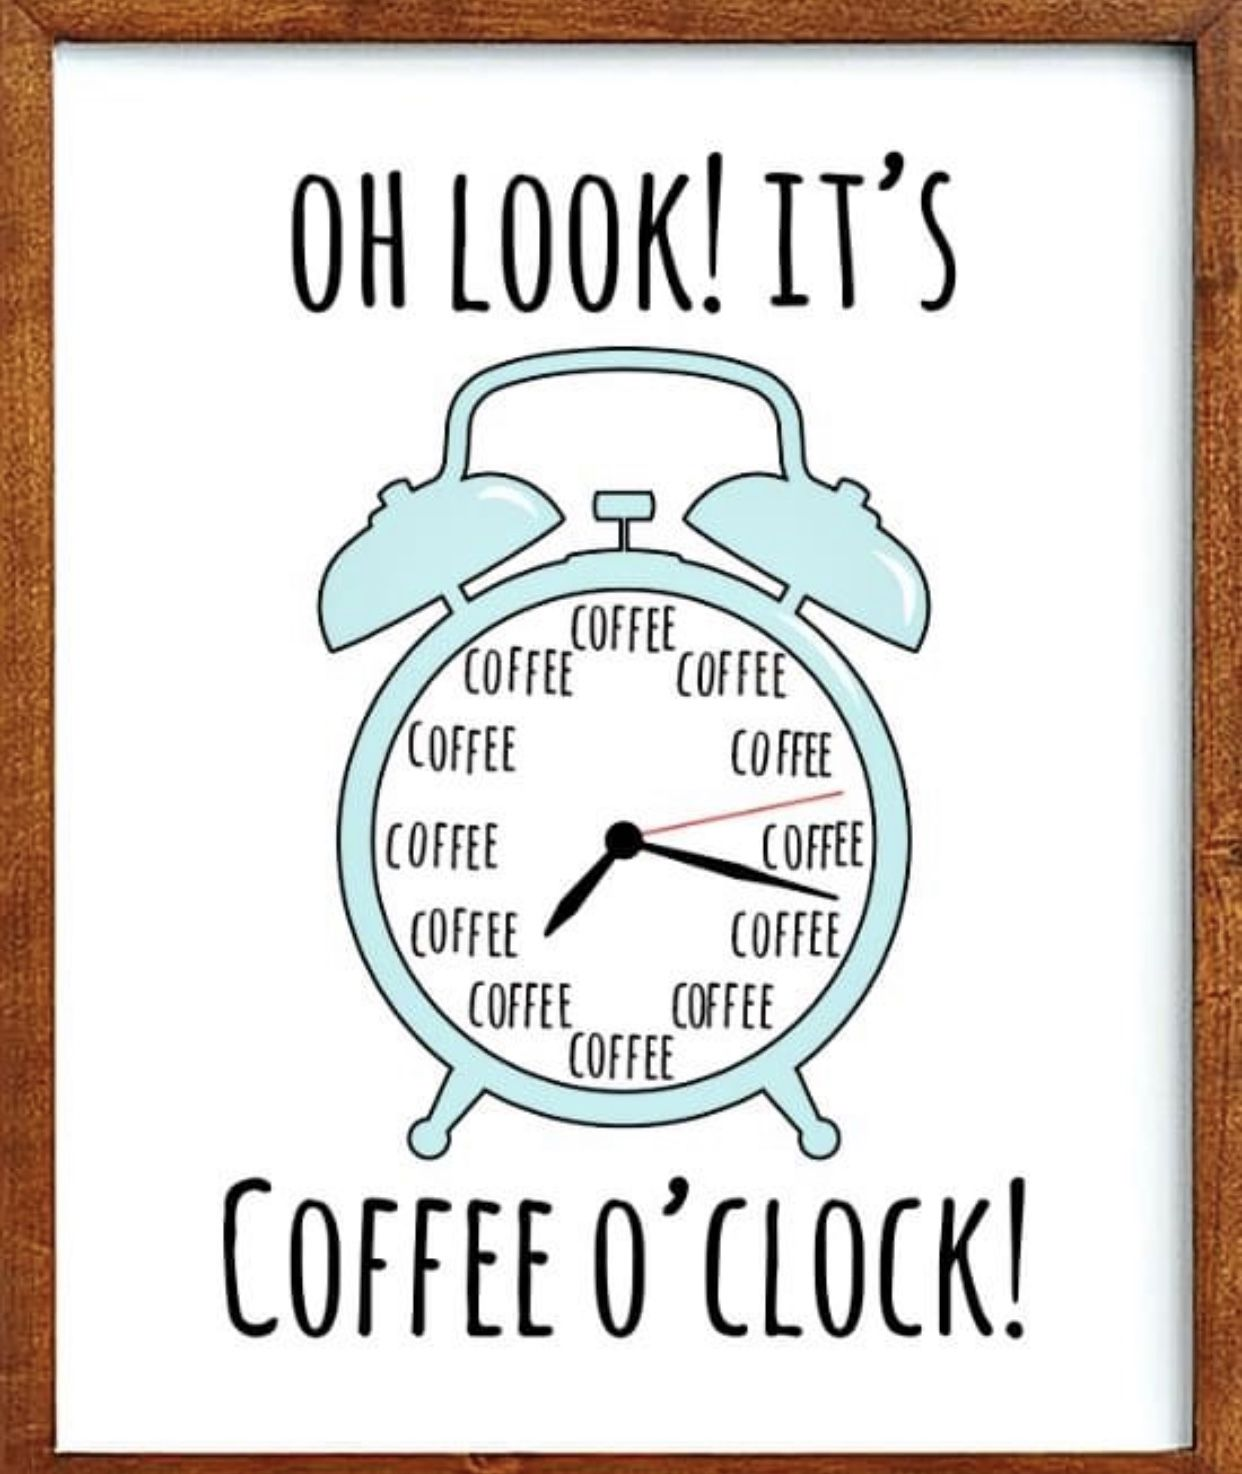 Pin by Life, Love, Travel & Lashes on Coffee! Need I say